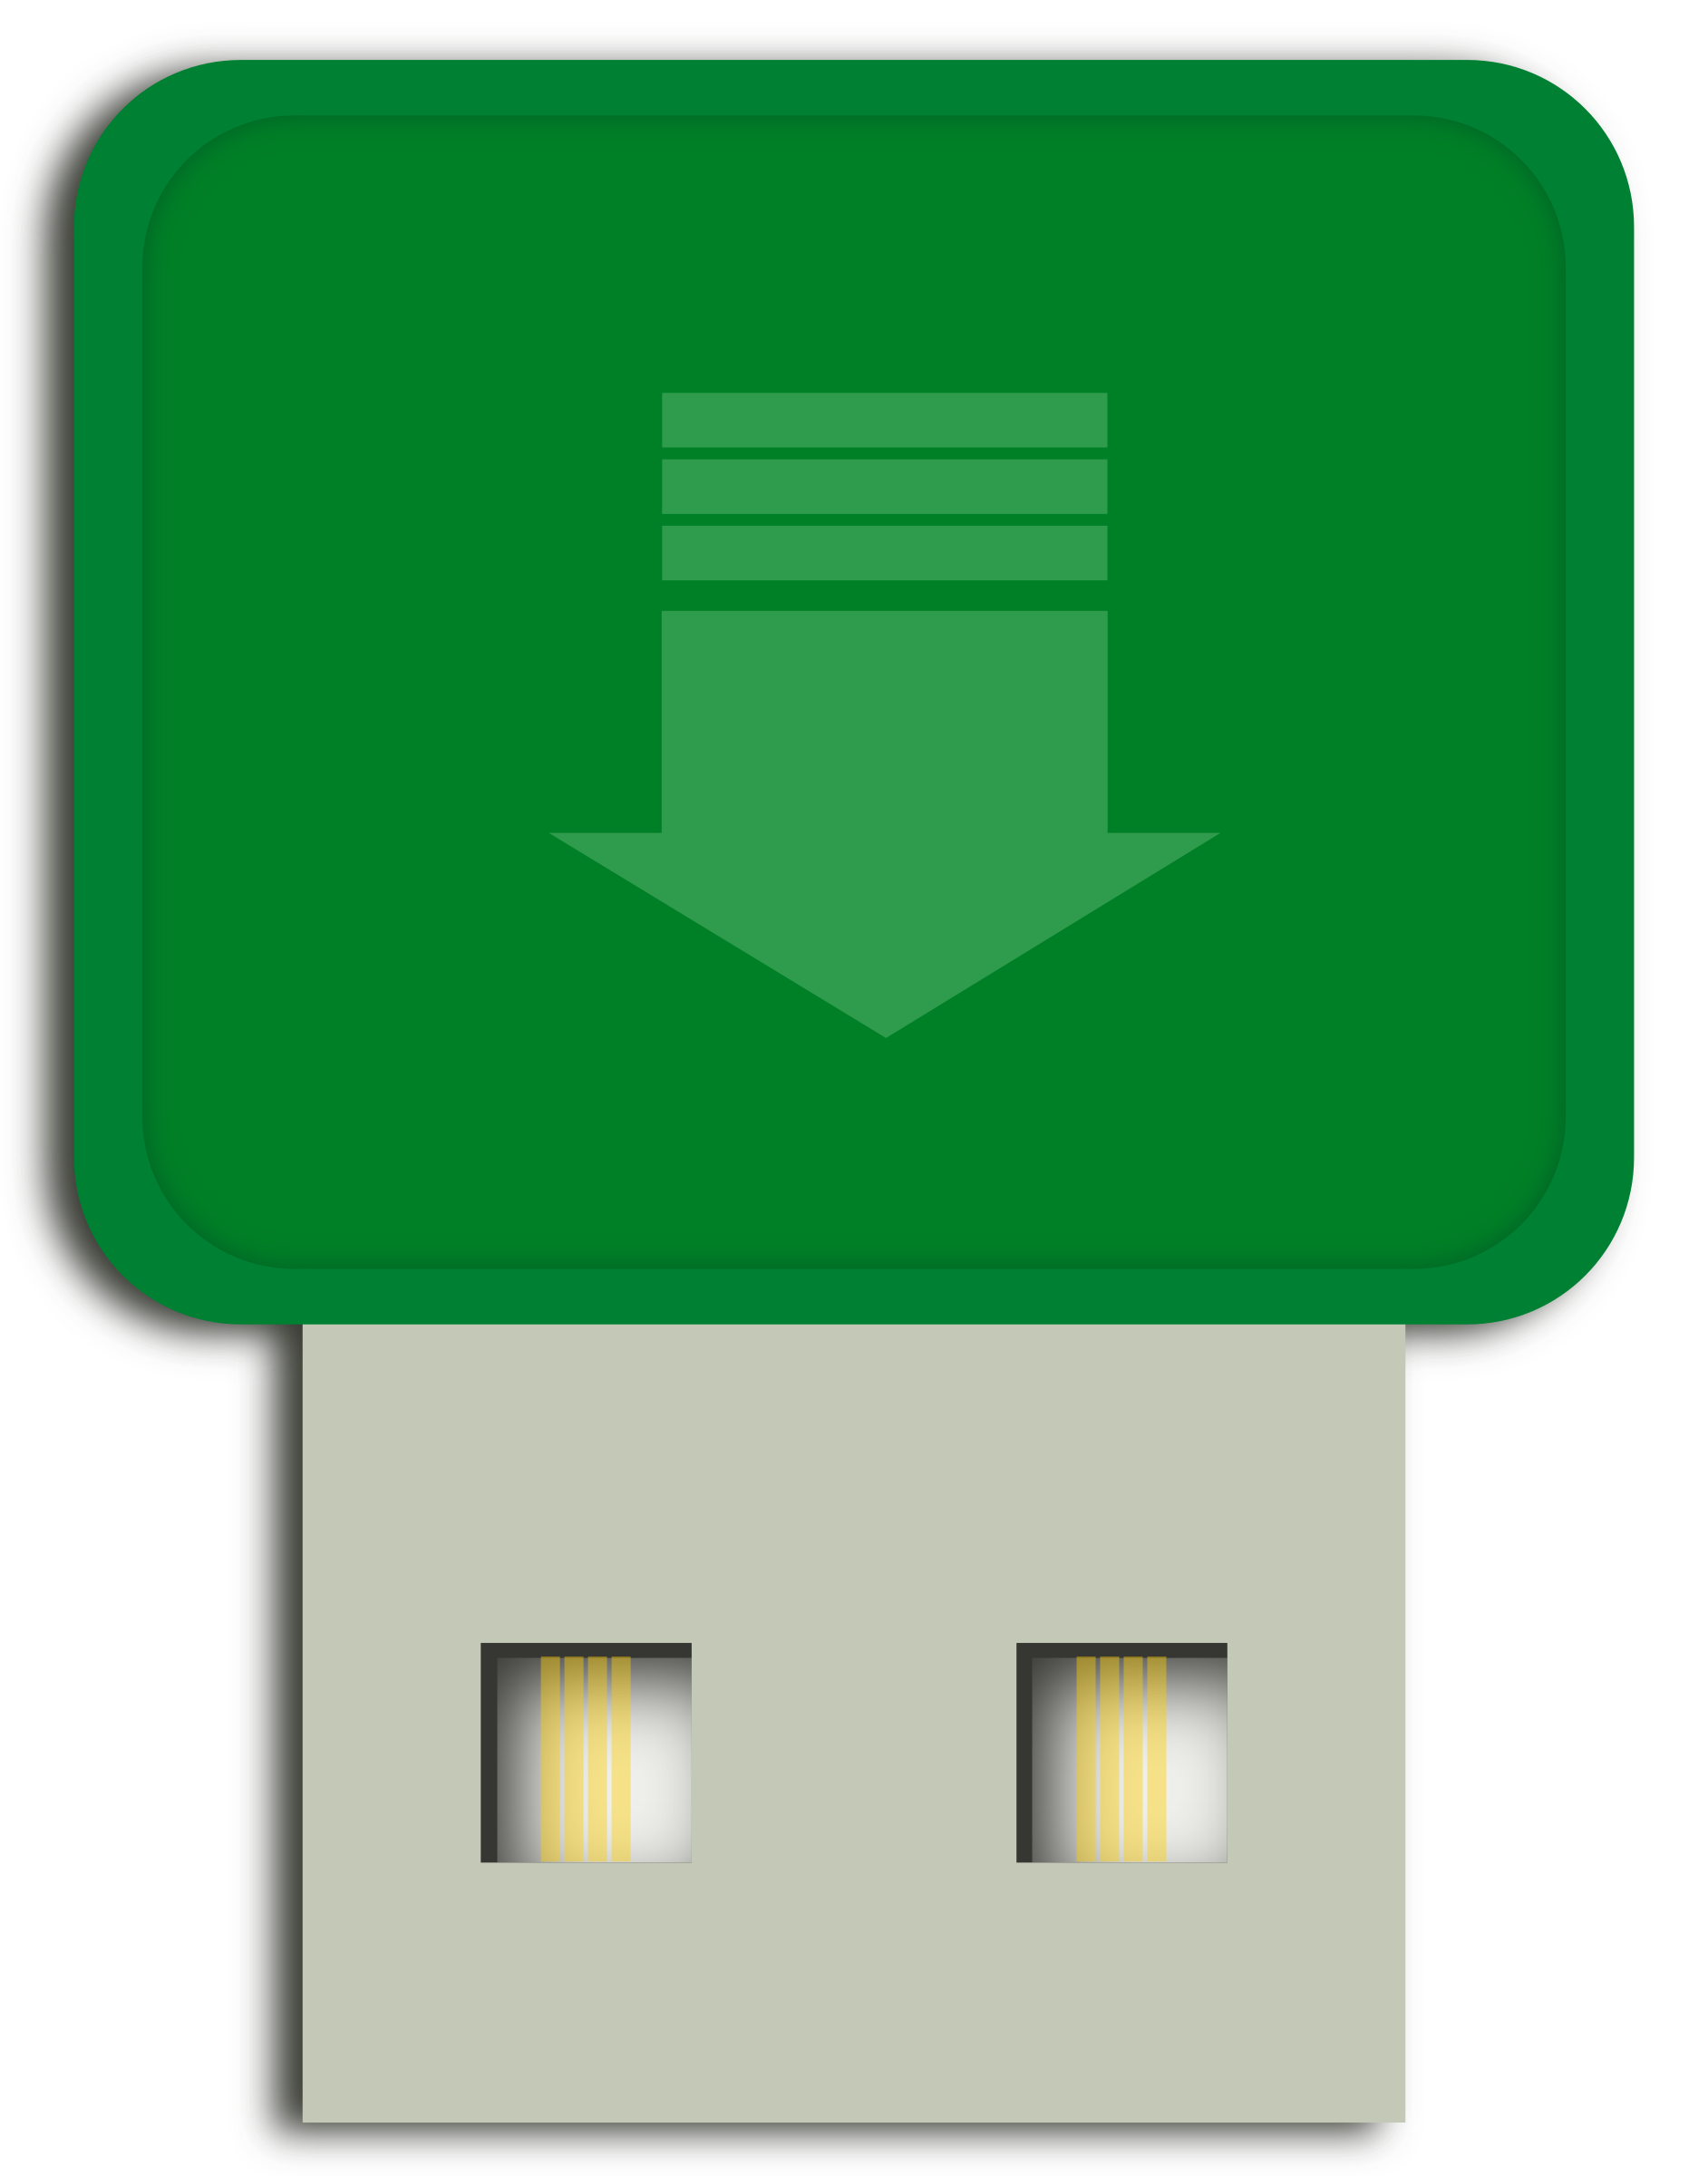 Flash drive mini by gsagri04